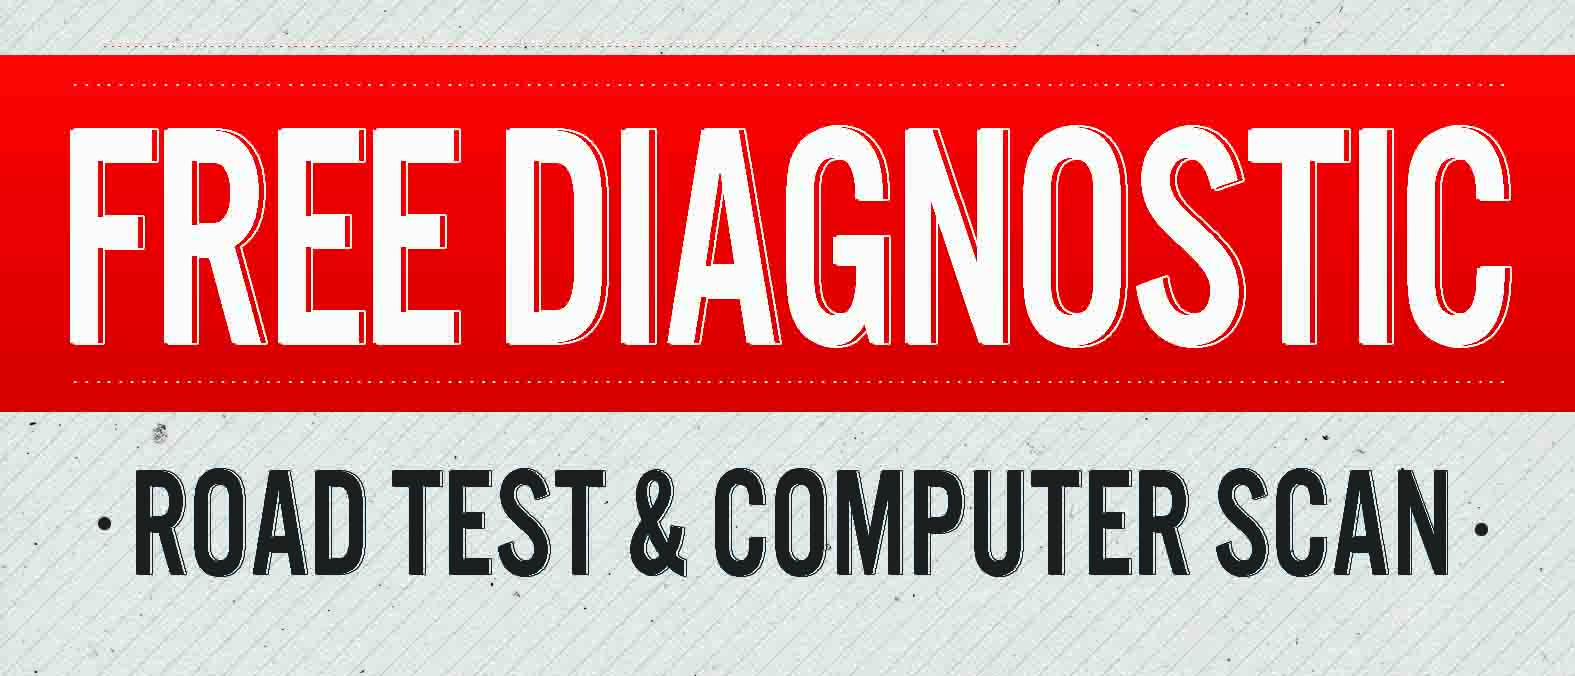 Graphic promoting the free diagnostic test Mastertech Transmissions offers at their Wichita shop